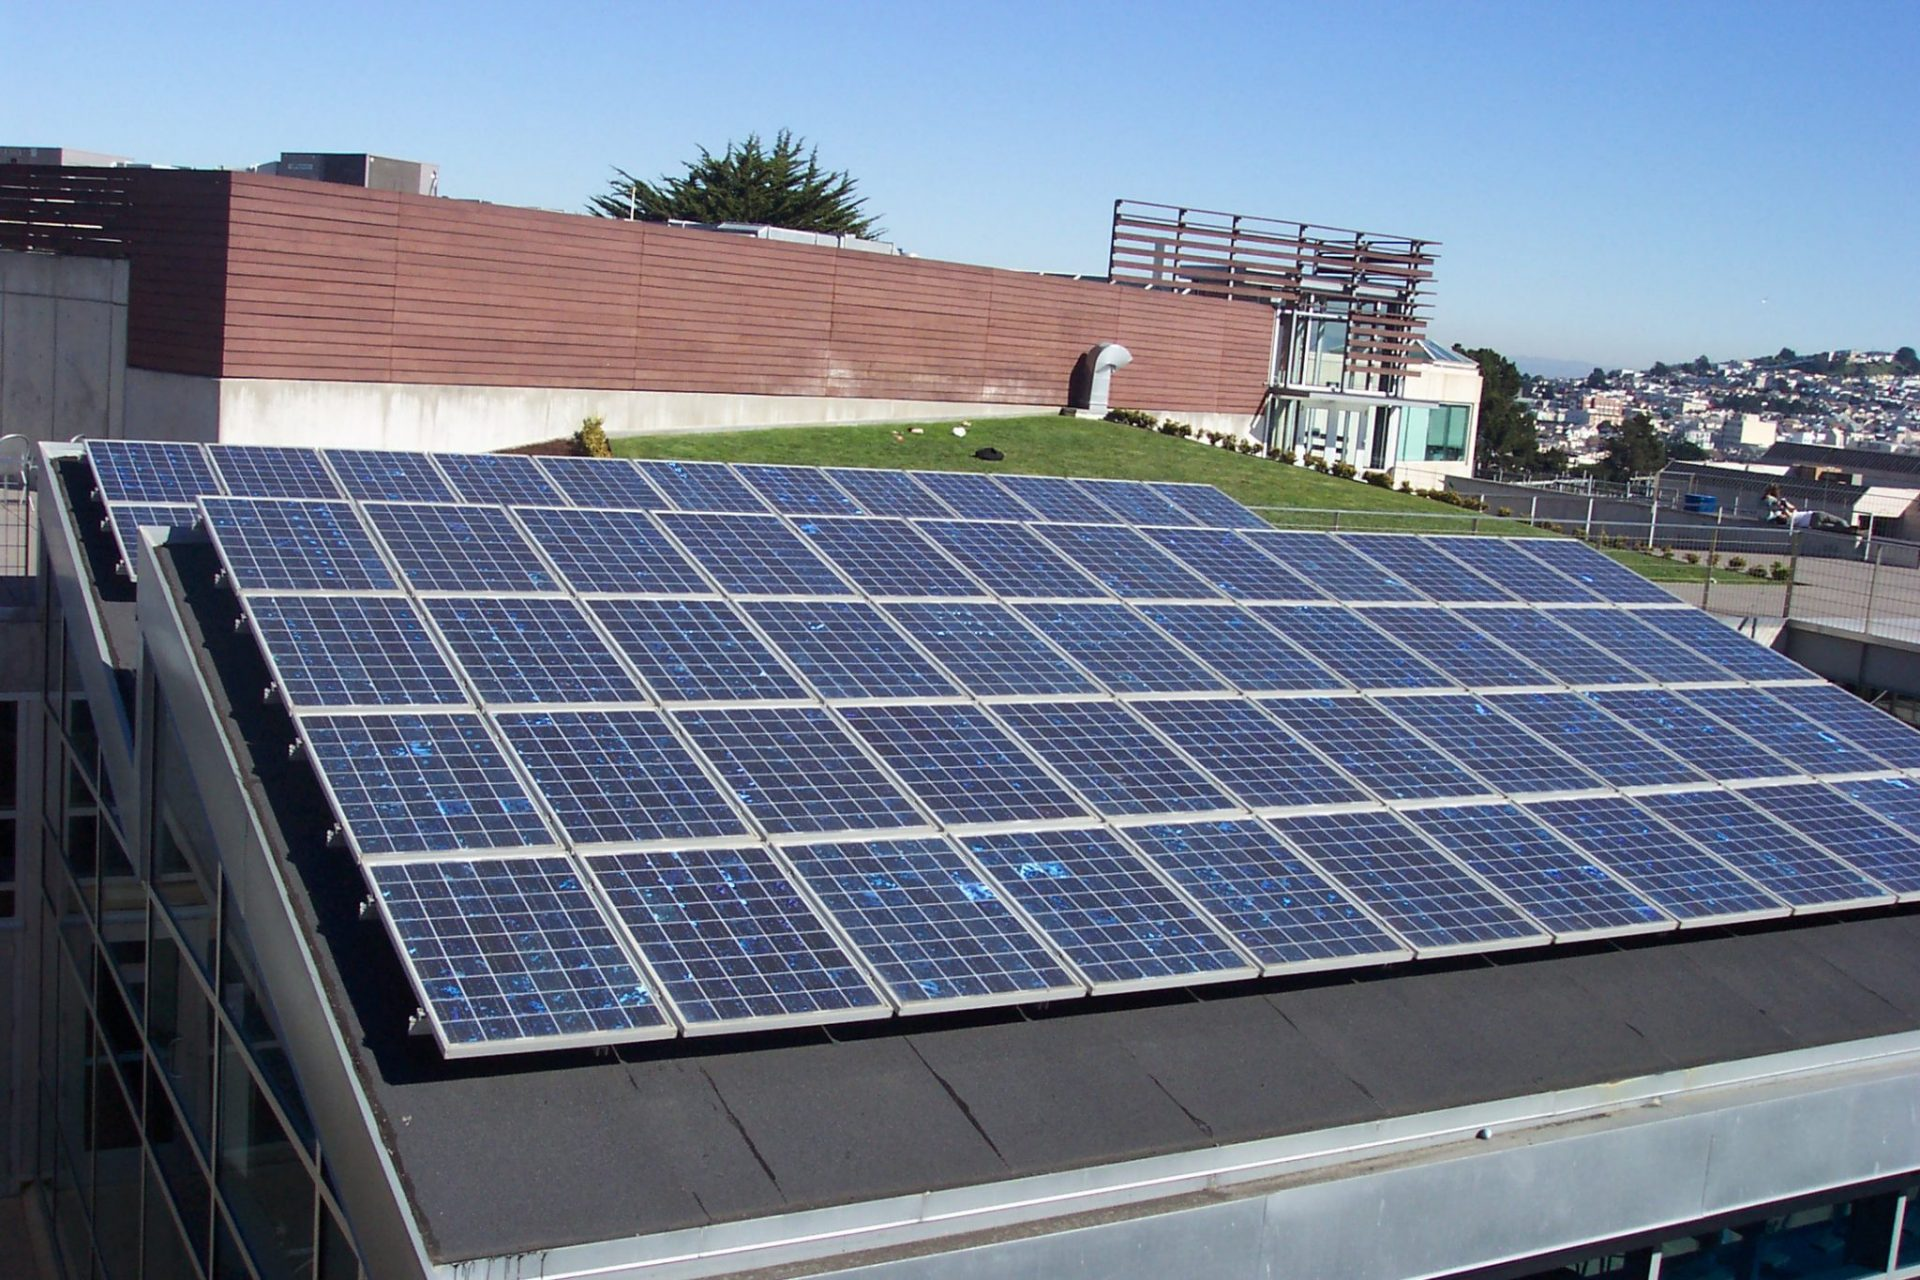 Zonnepanelen op school in San Francisco